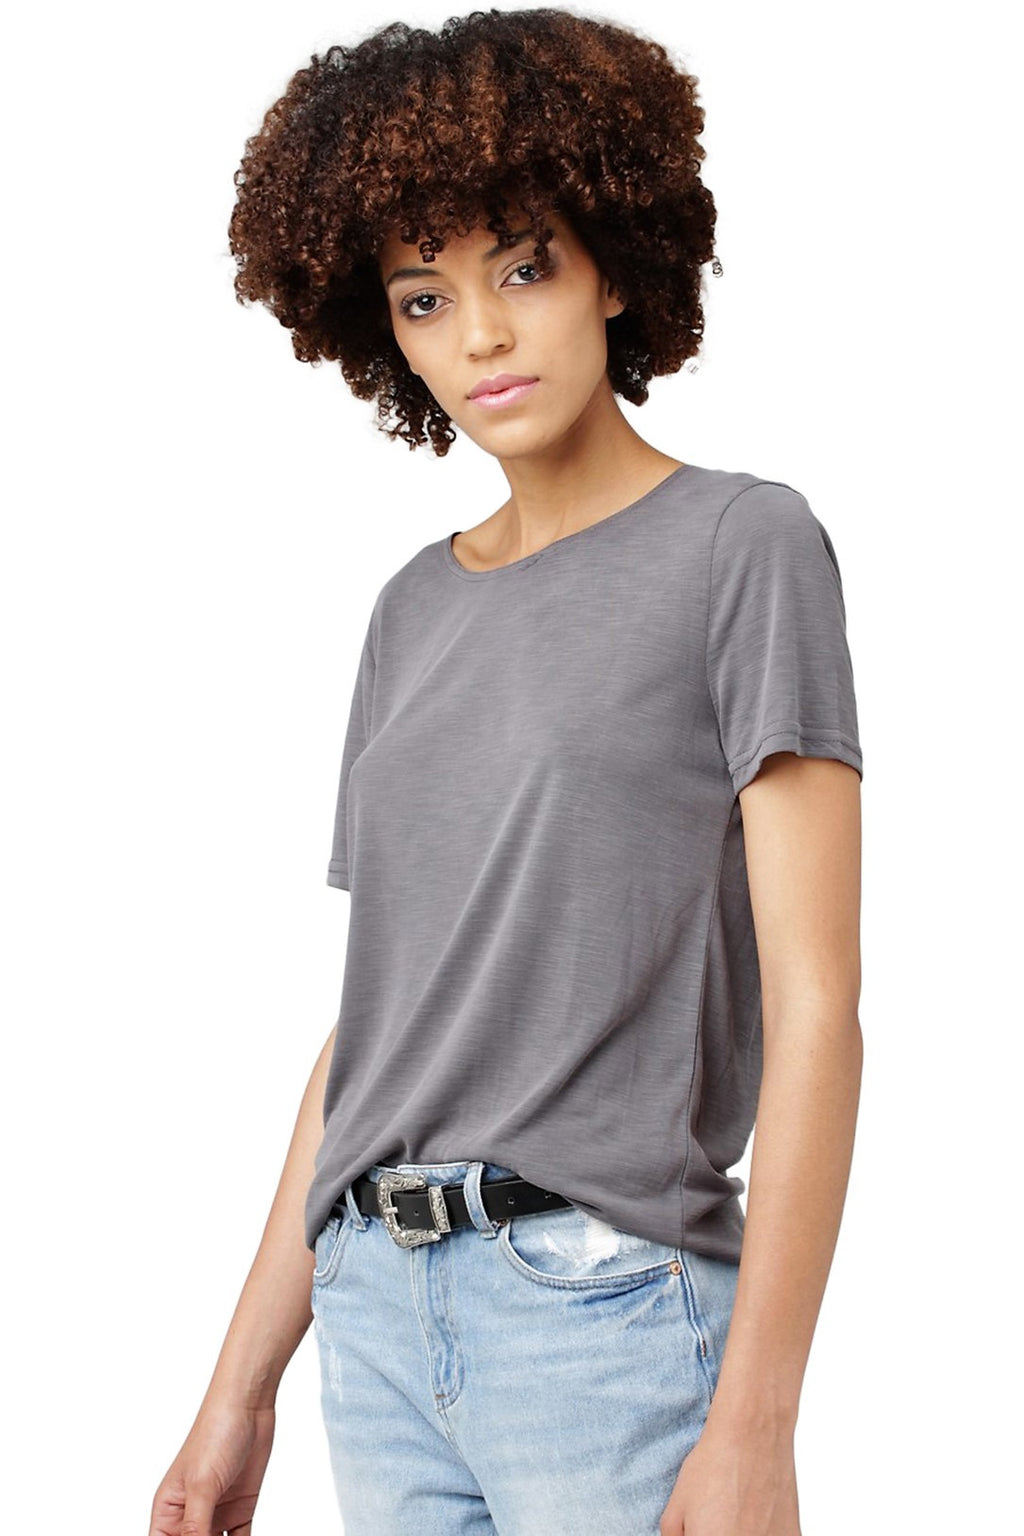 Skinny Boy Cotton Tee